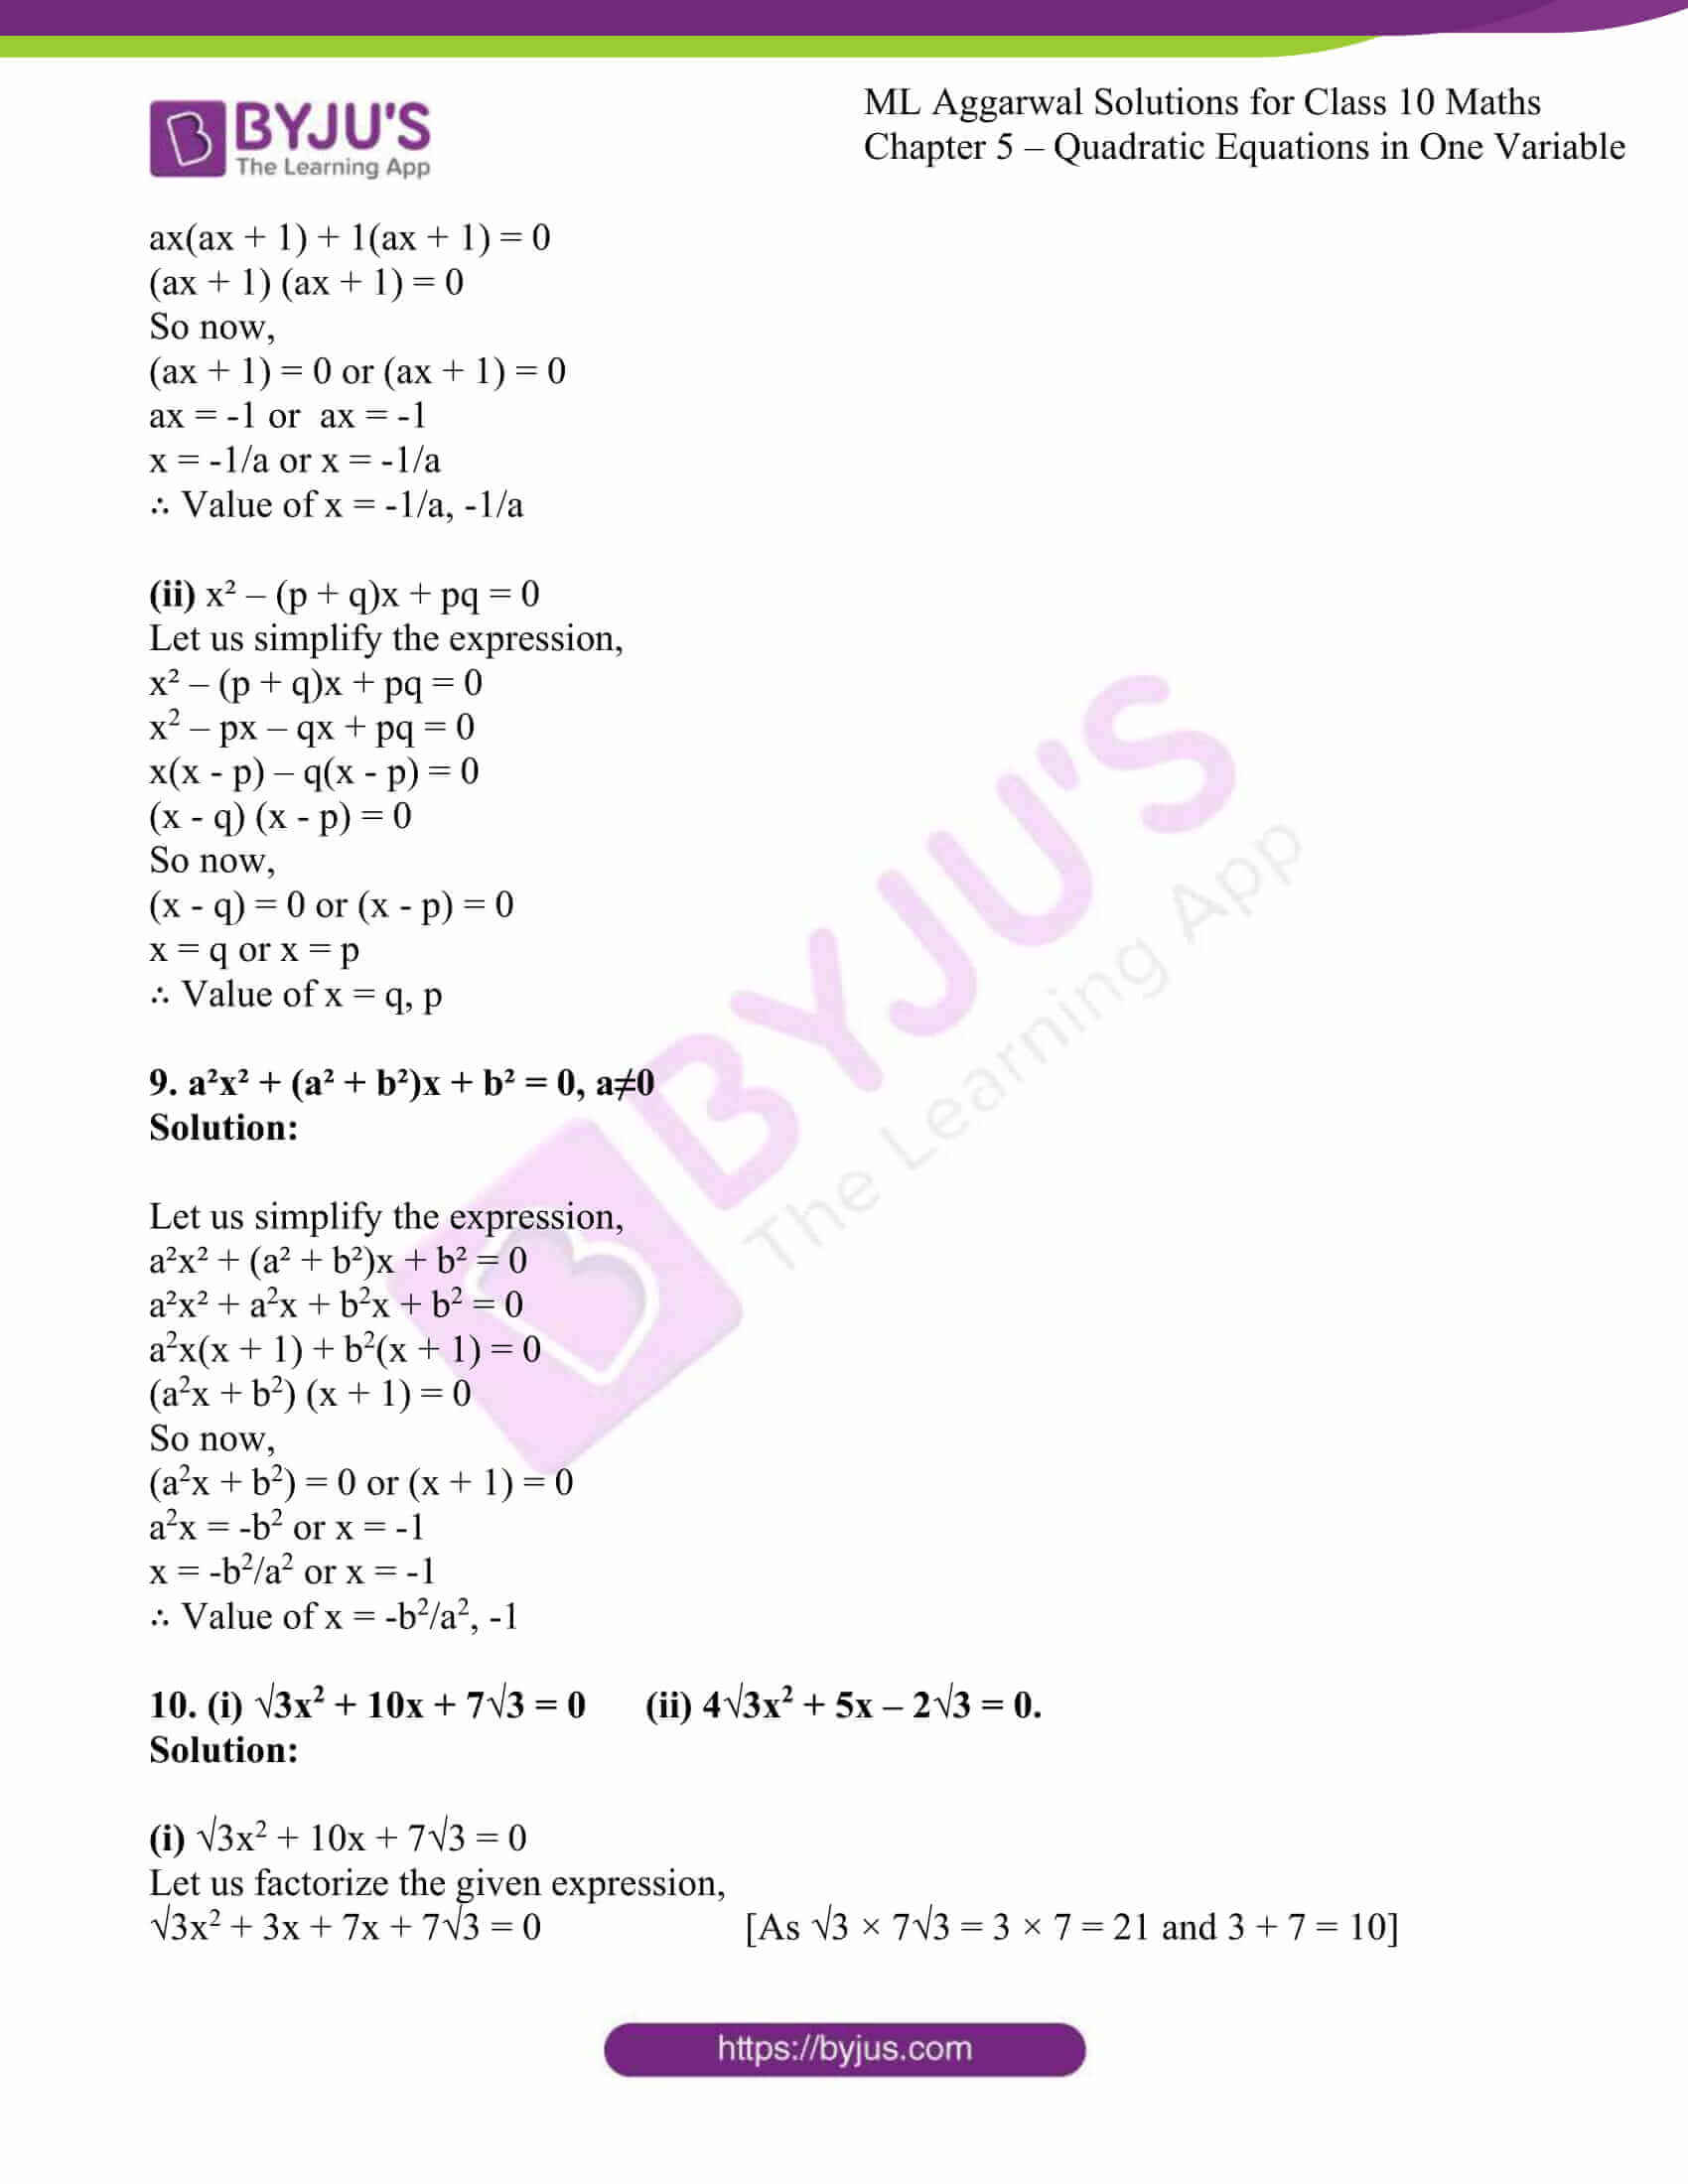 ml aggarwal solutions class 10 maths chapter 5 11